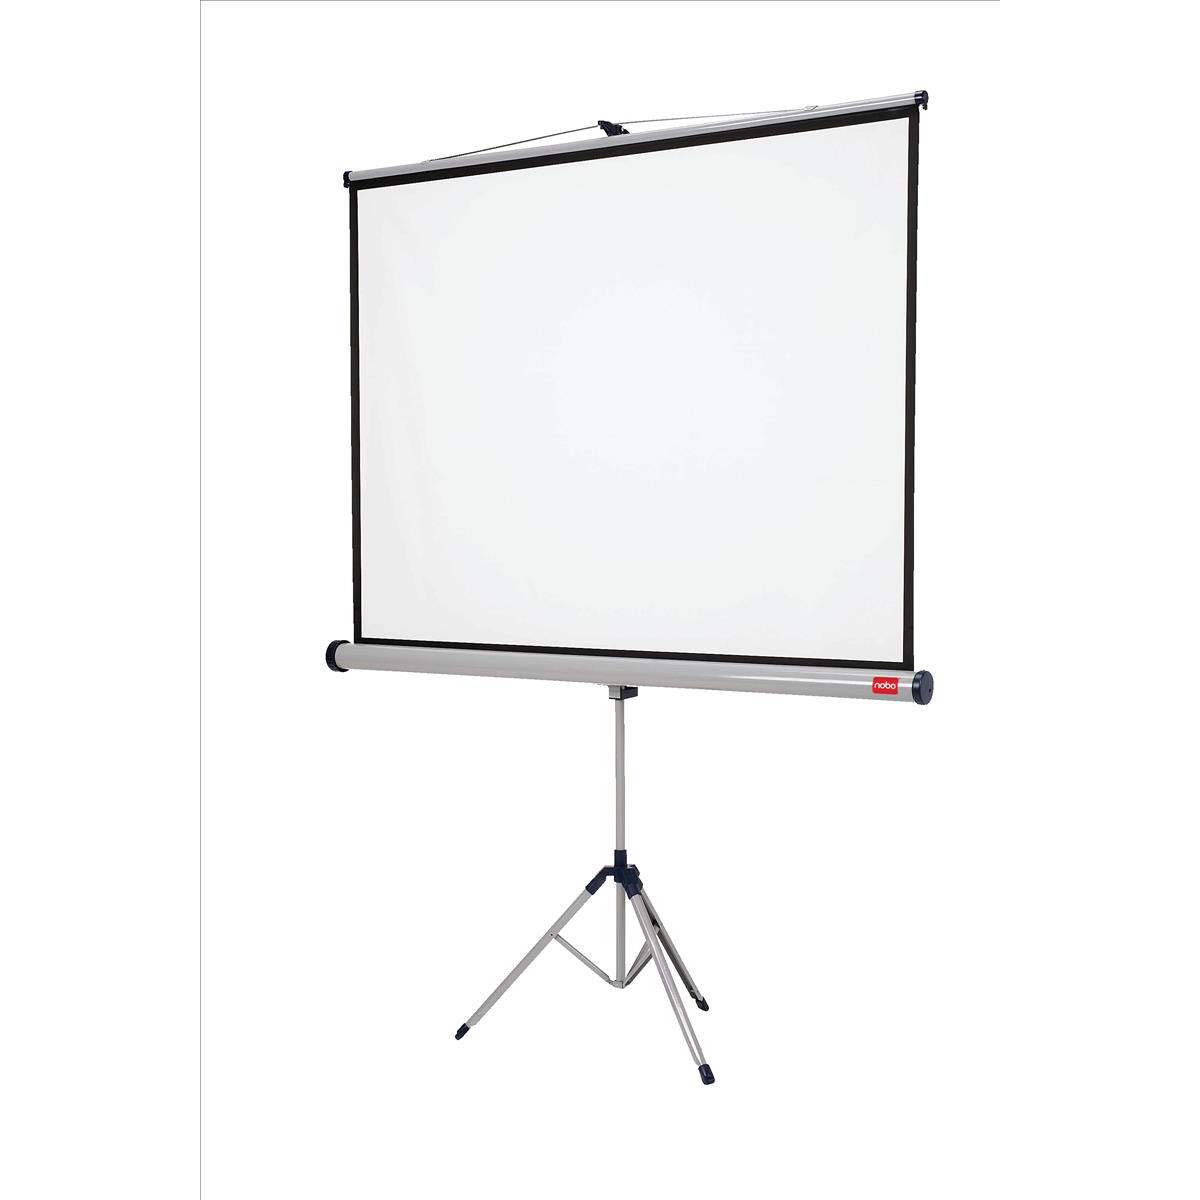 Screens Nobo Tripod Widescreen Projection Screen W1500xH1000 Ref 1902395W